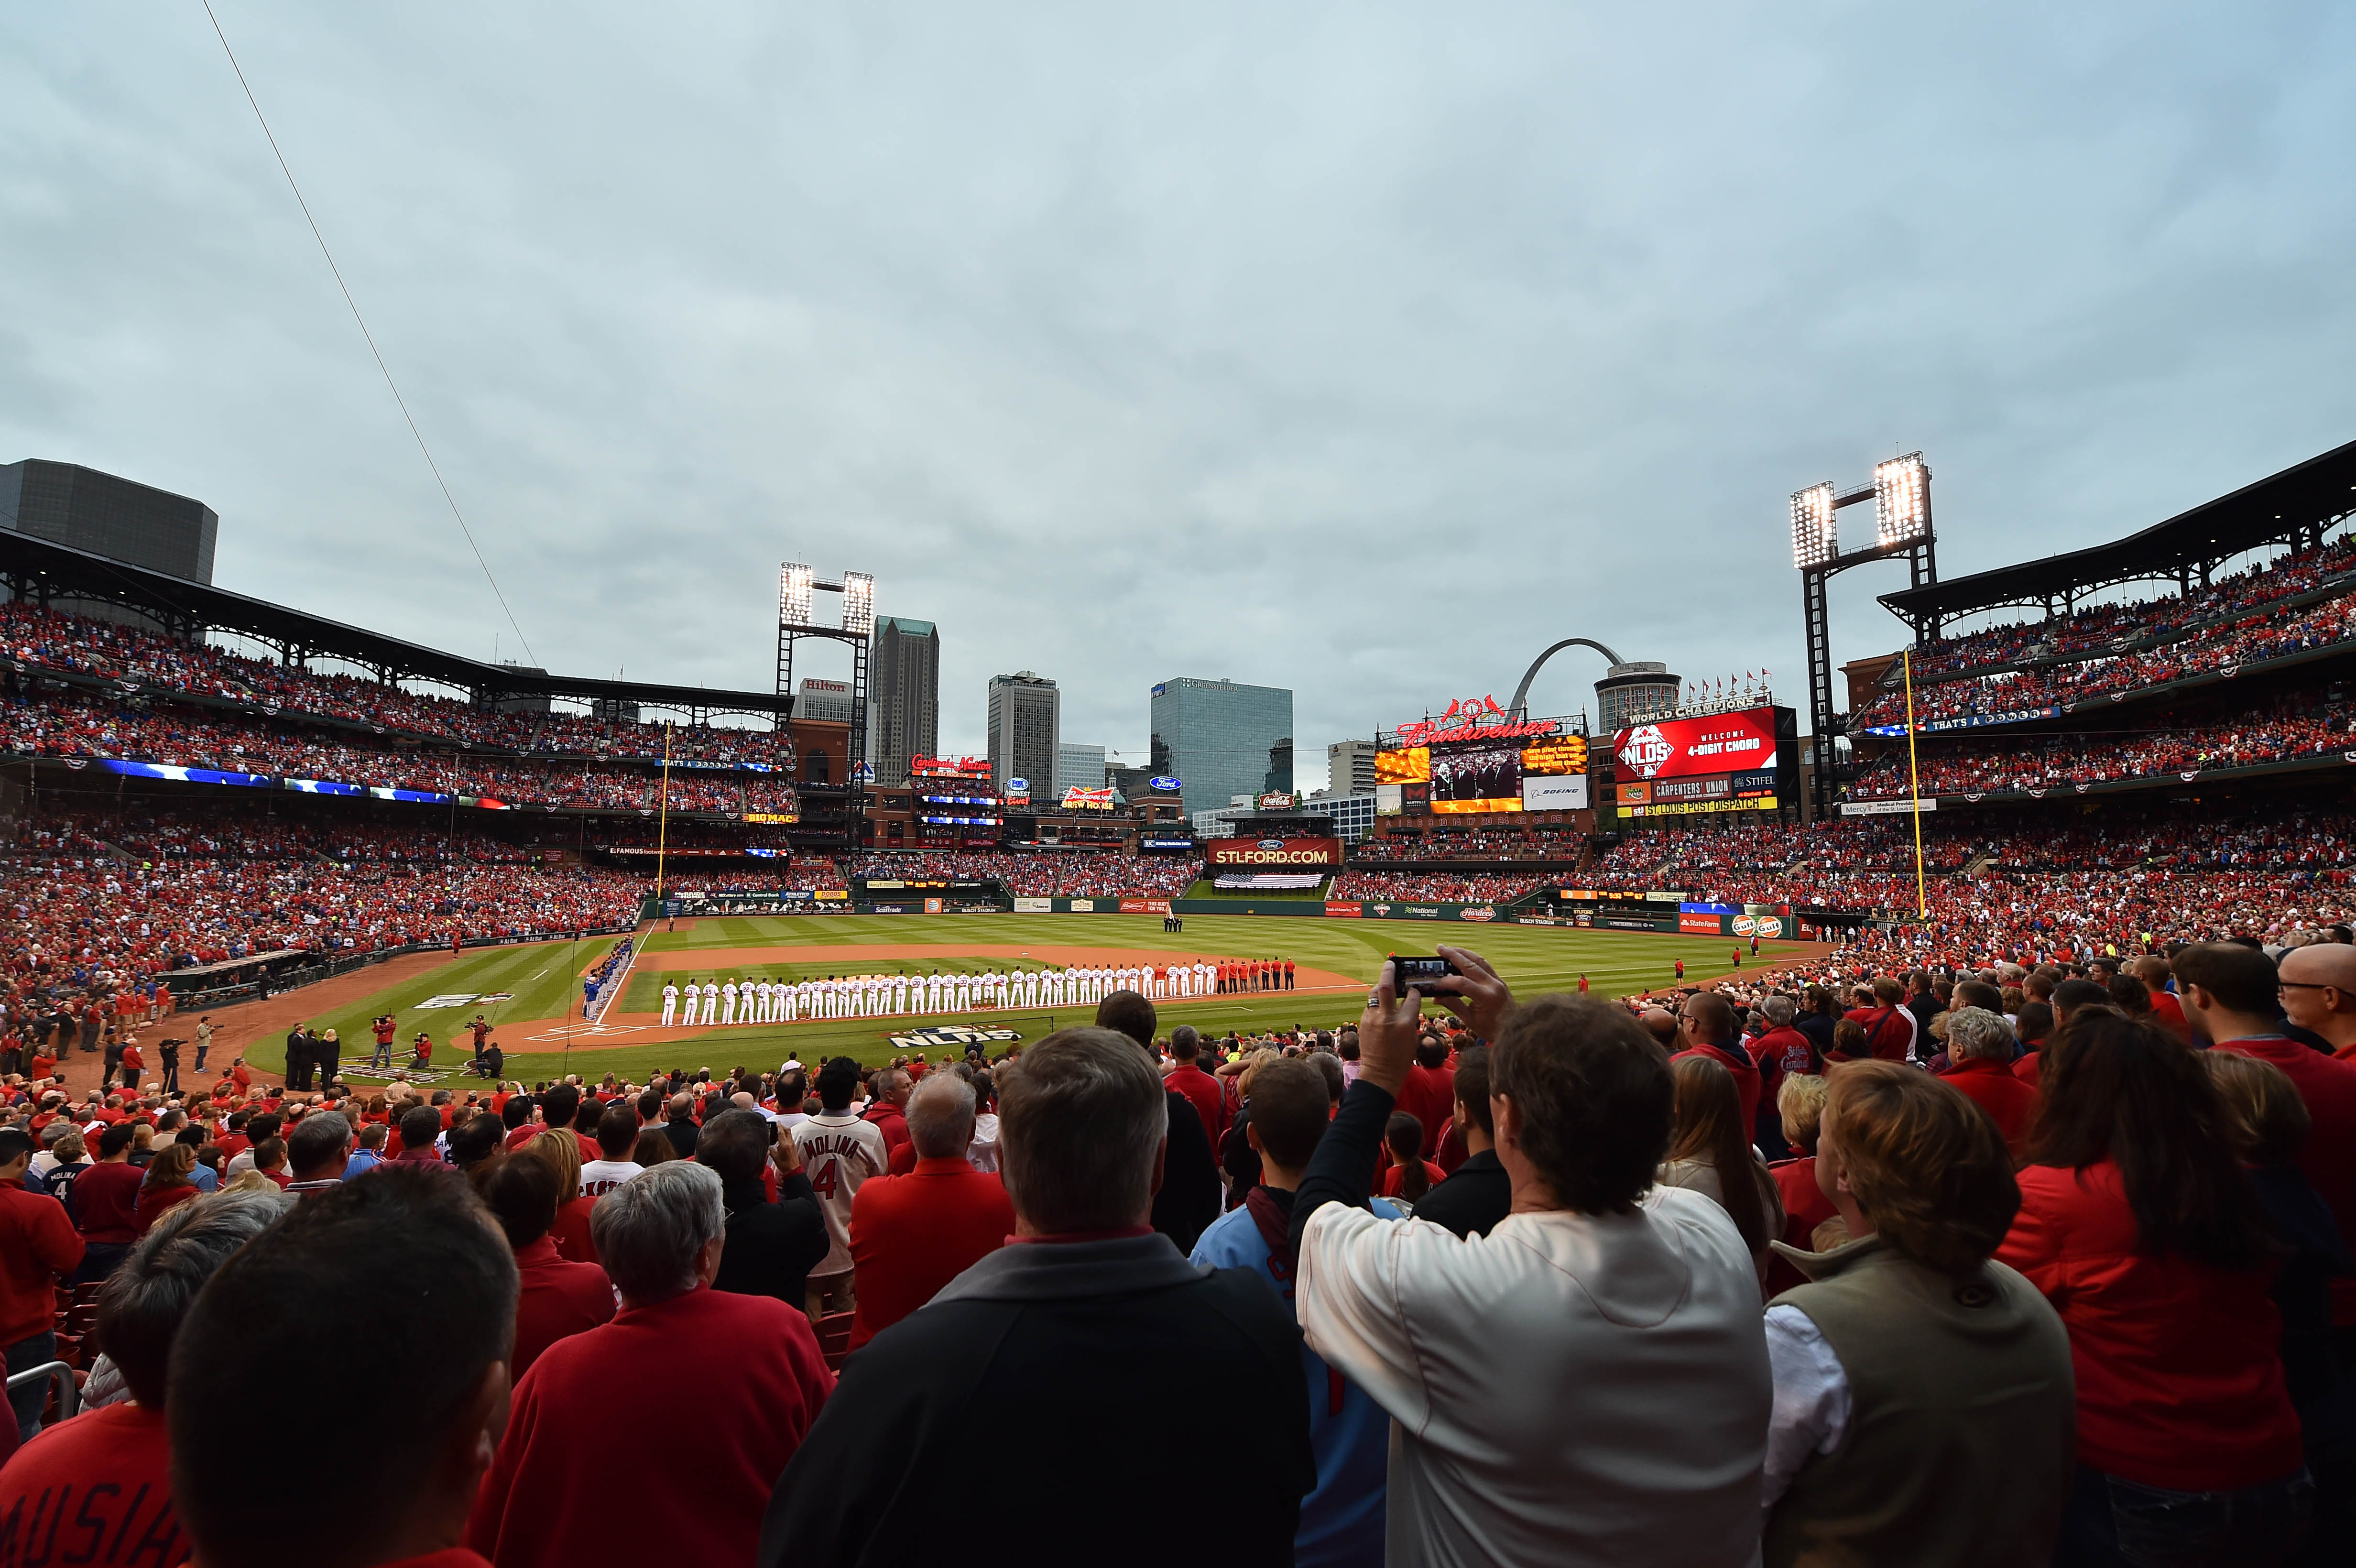 8850330-mlb-nlds-chicago-cubs-at-st.-louis-cardinals